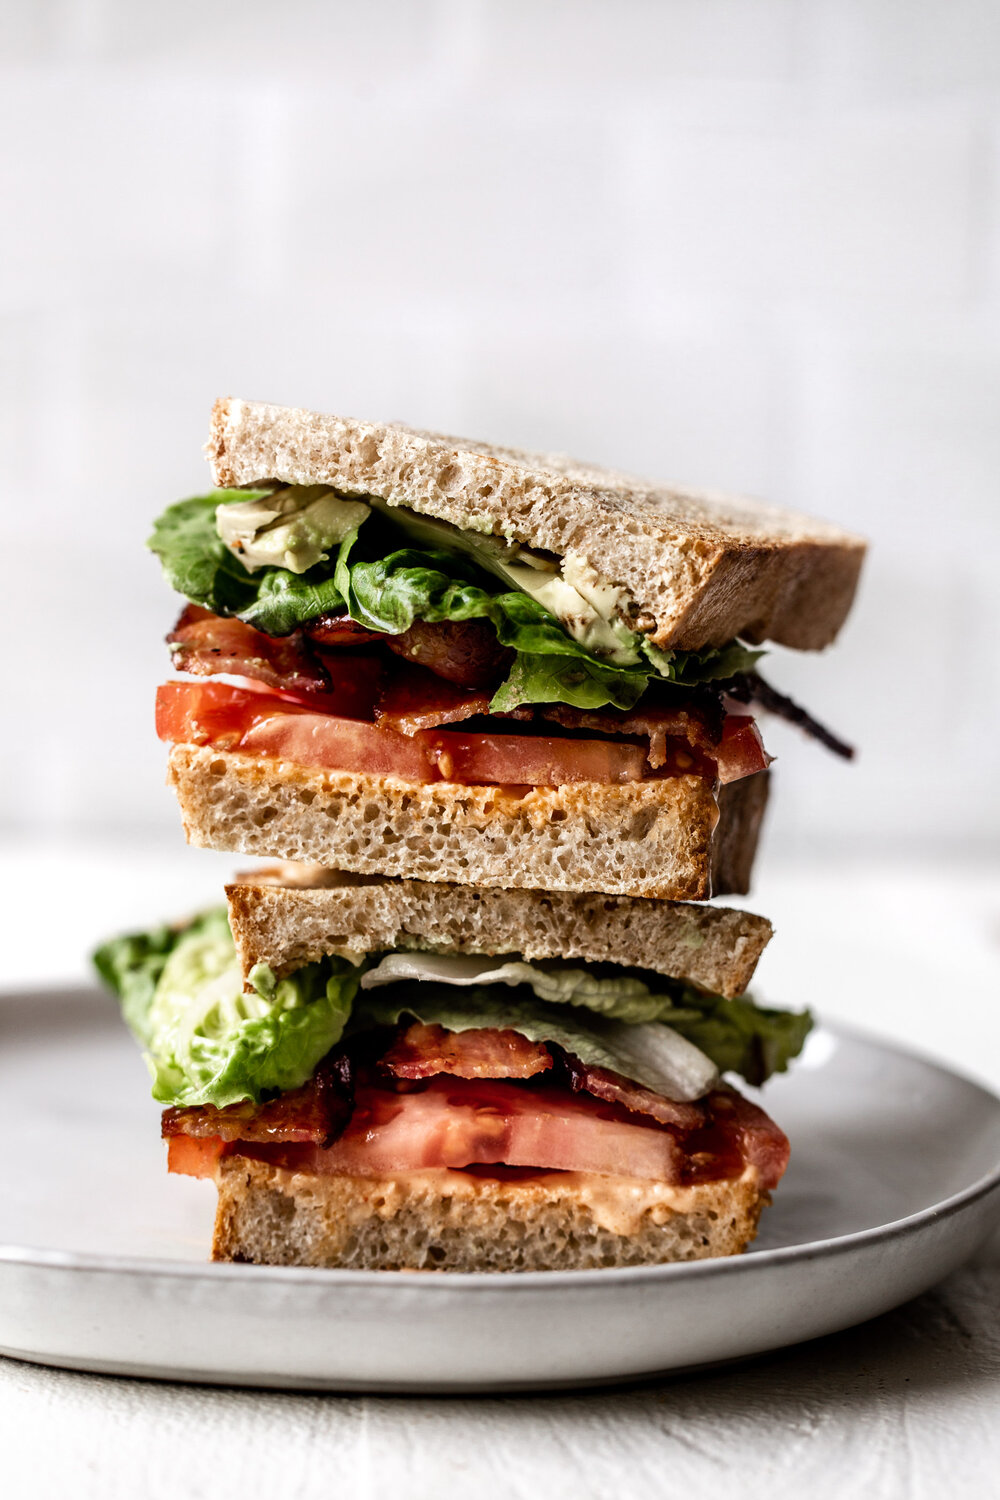 BLT with Spicy Mayo and Avocado-39.jpg